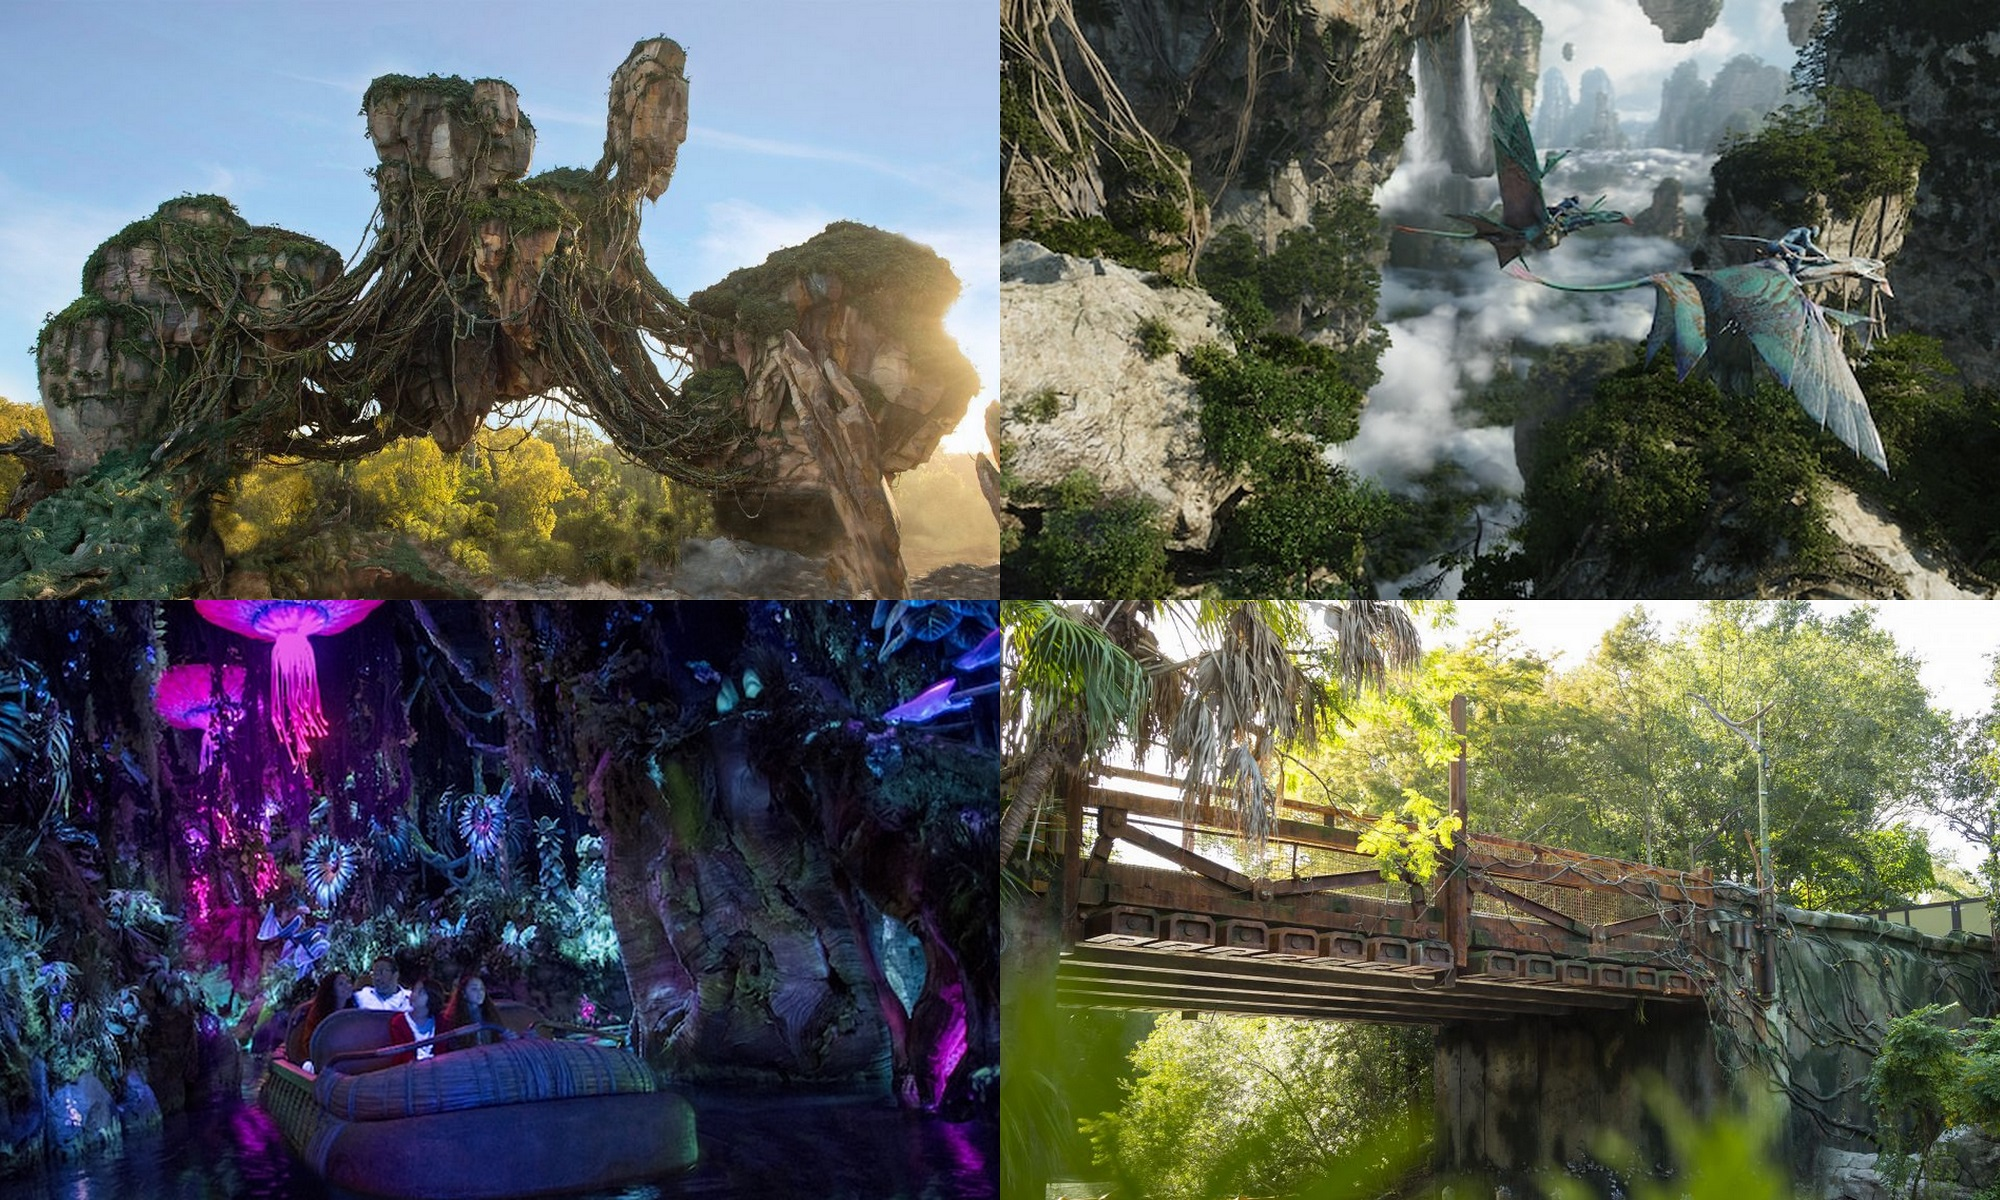 an-inside-look-at-pandora-the-world-of-avatar-in-disneys-animal-kingdom-at-walt-disney-world